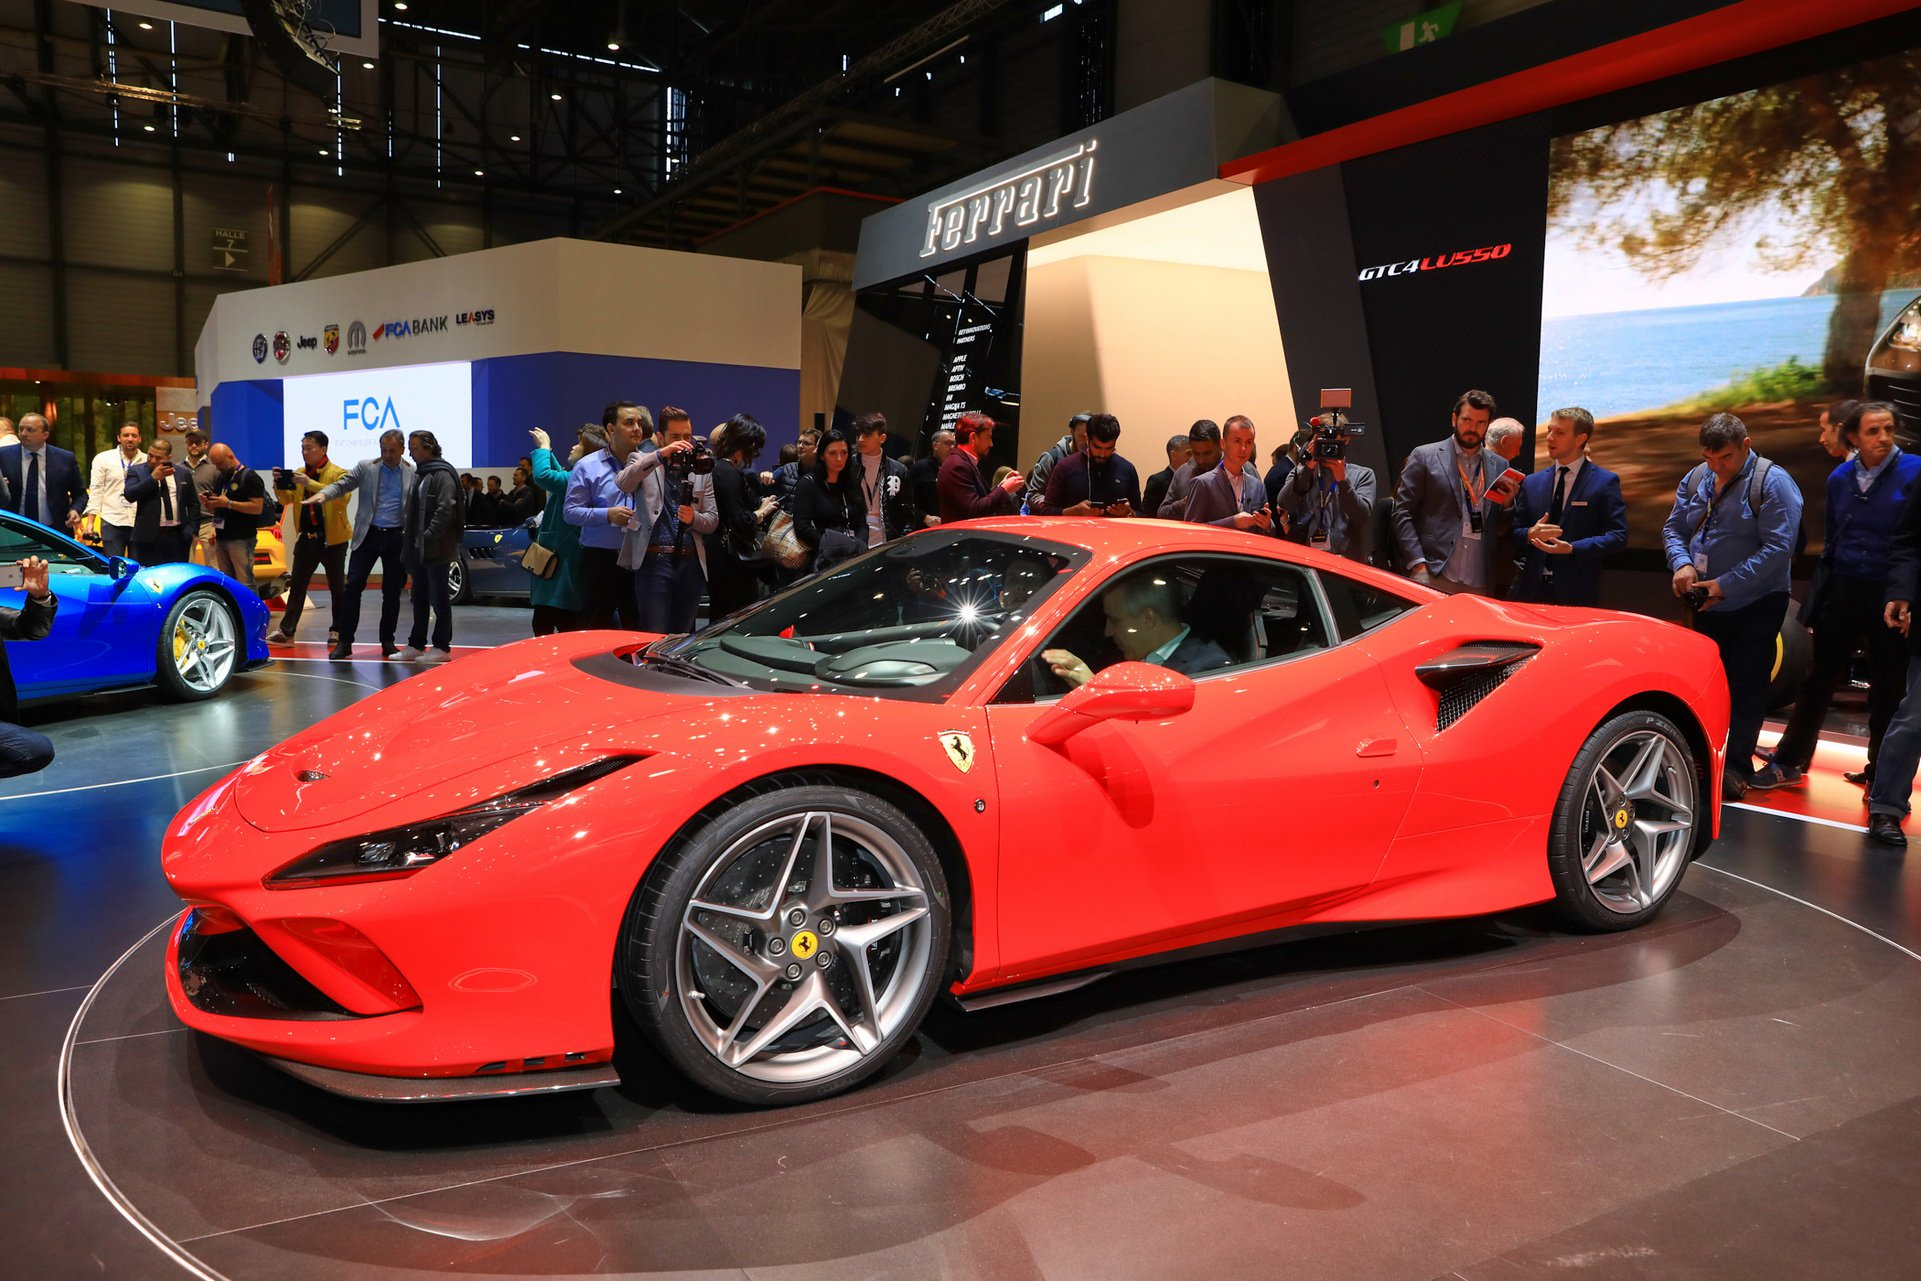 Ferrari has told us some new details concerning its soon-to-come F8 Tributo supercar